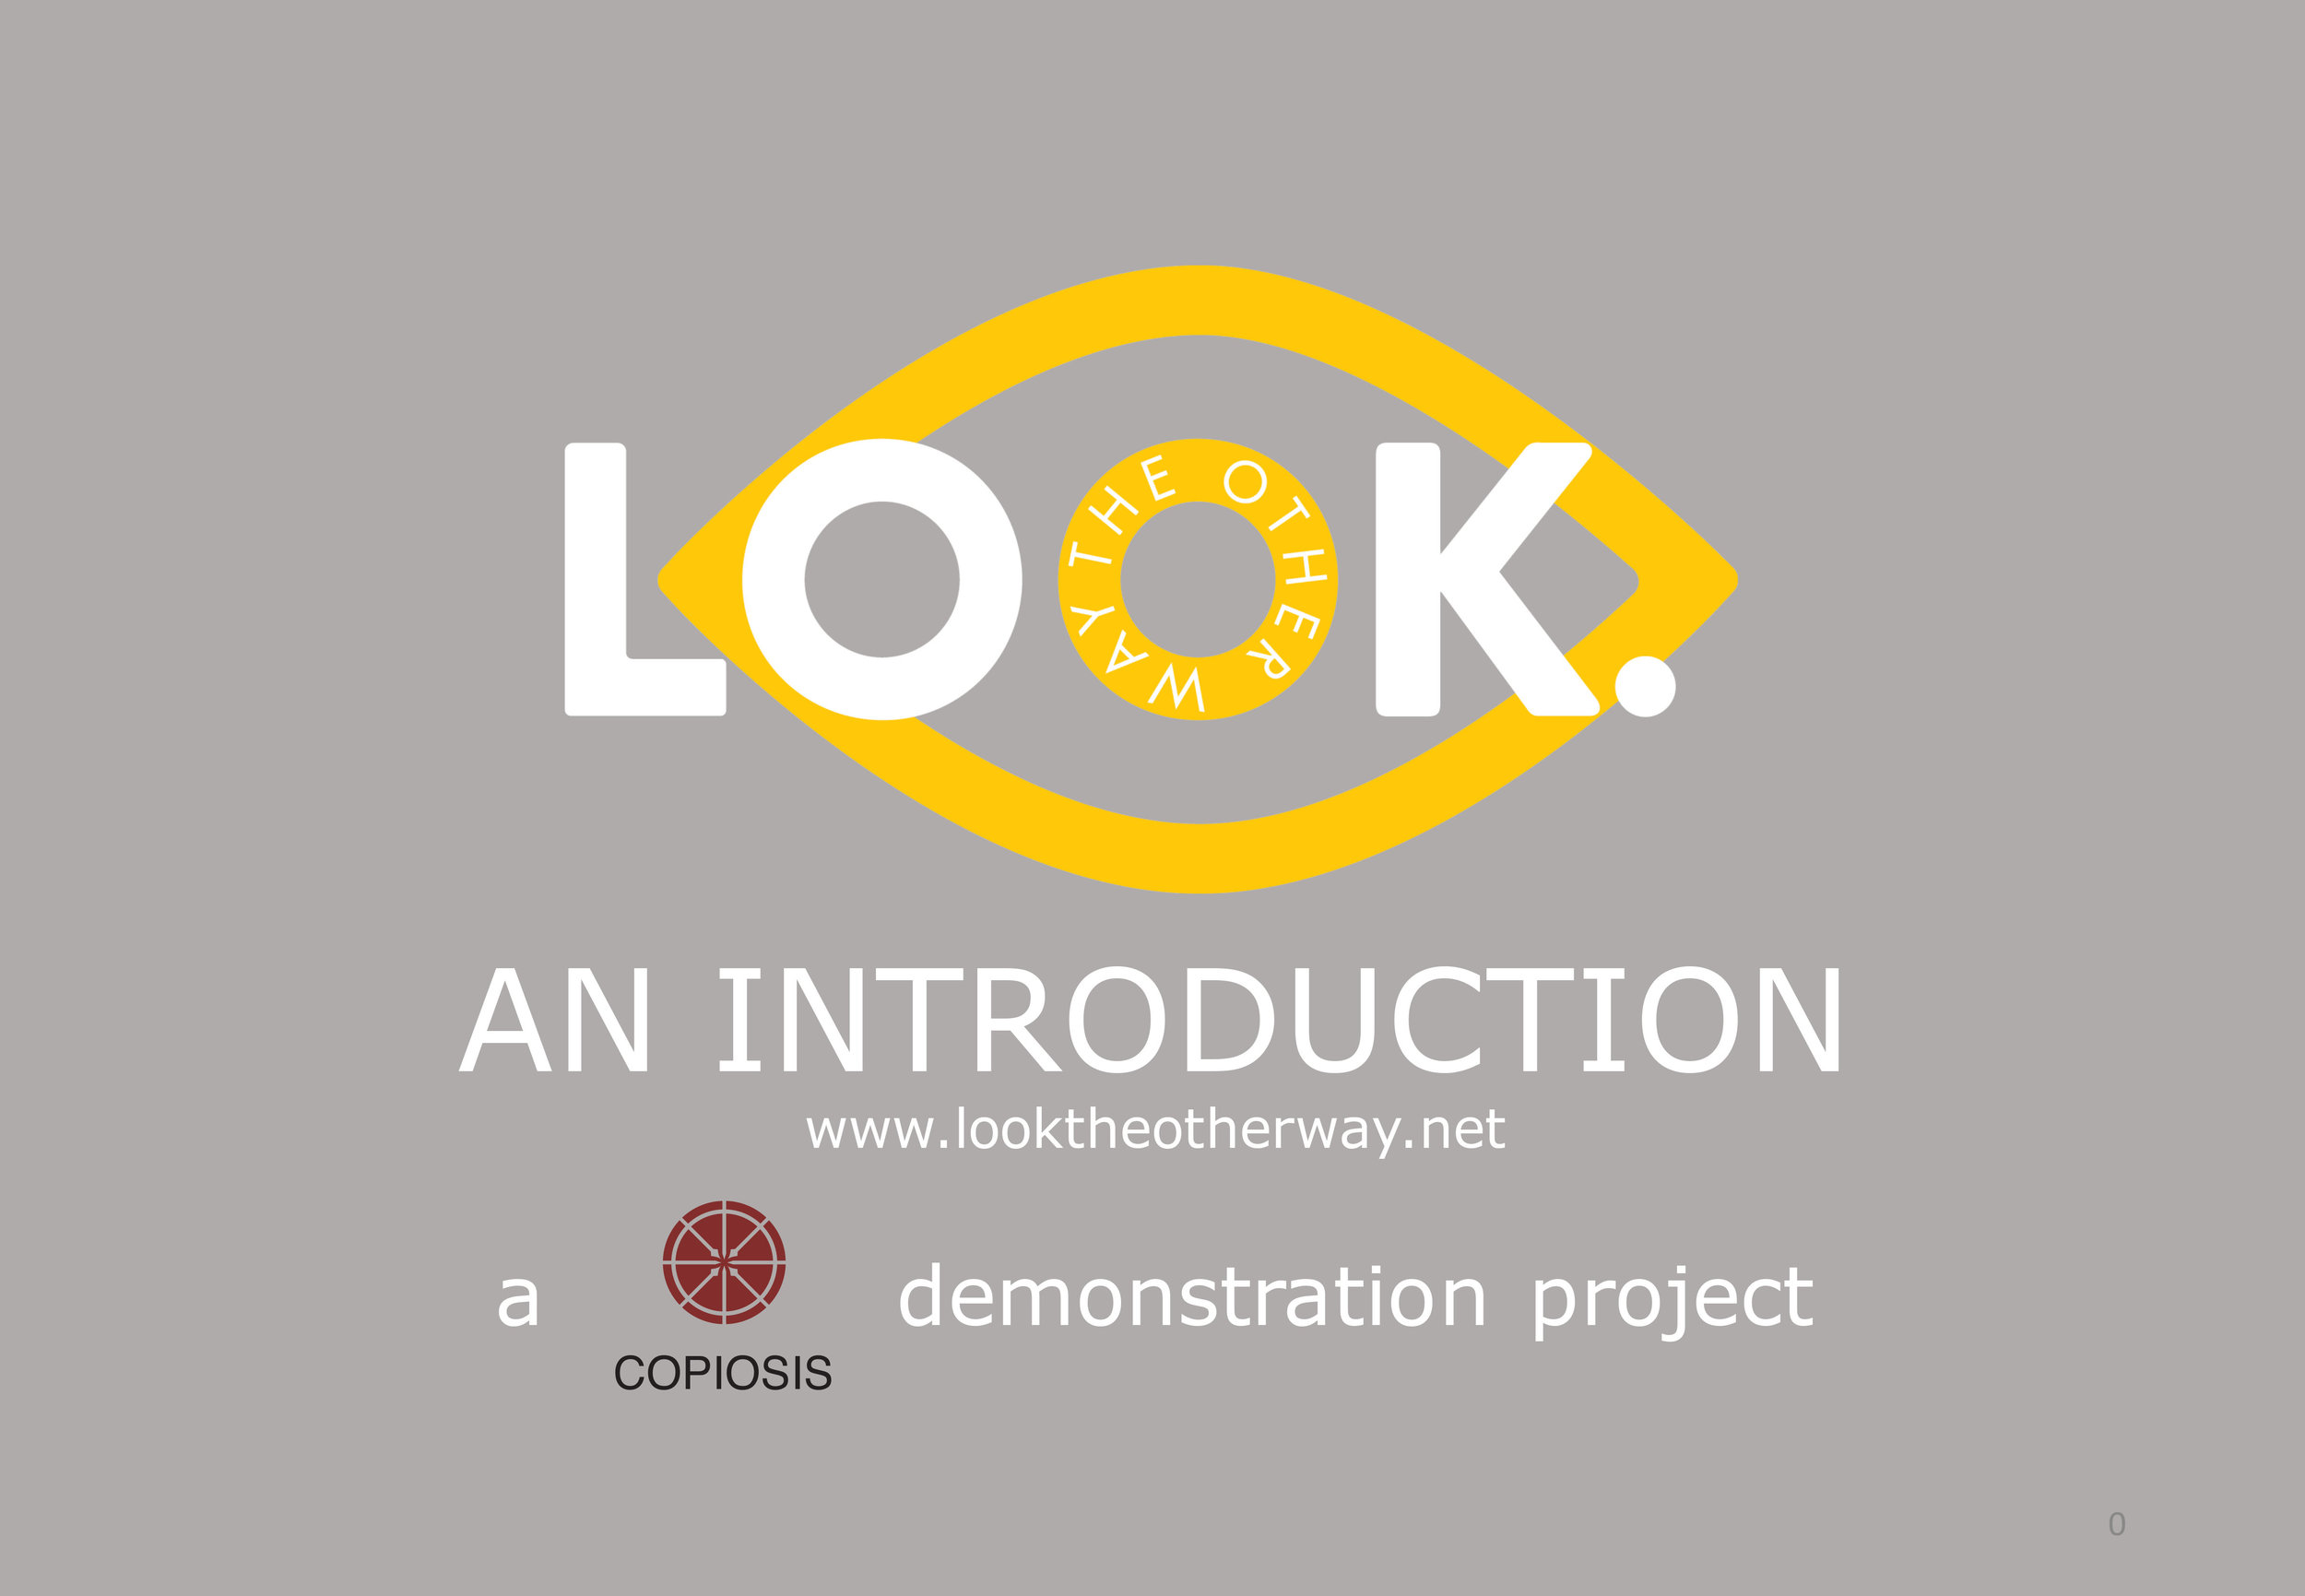 LOOK. An Introduction - Click Image to view PDF Document